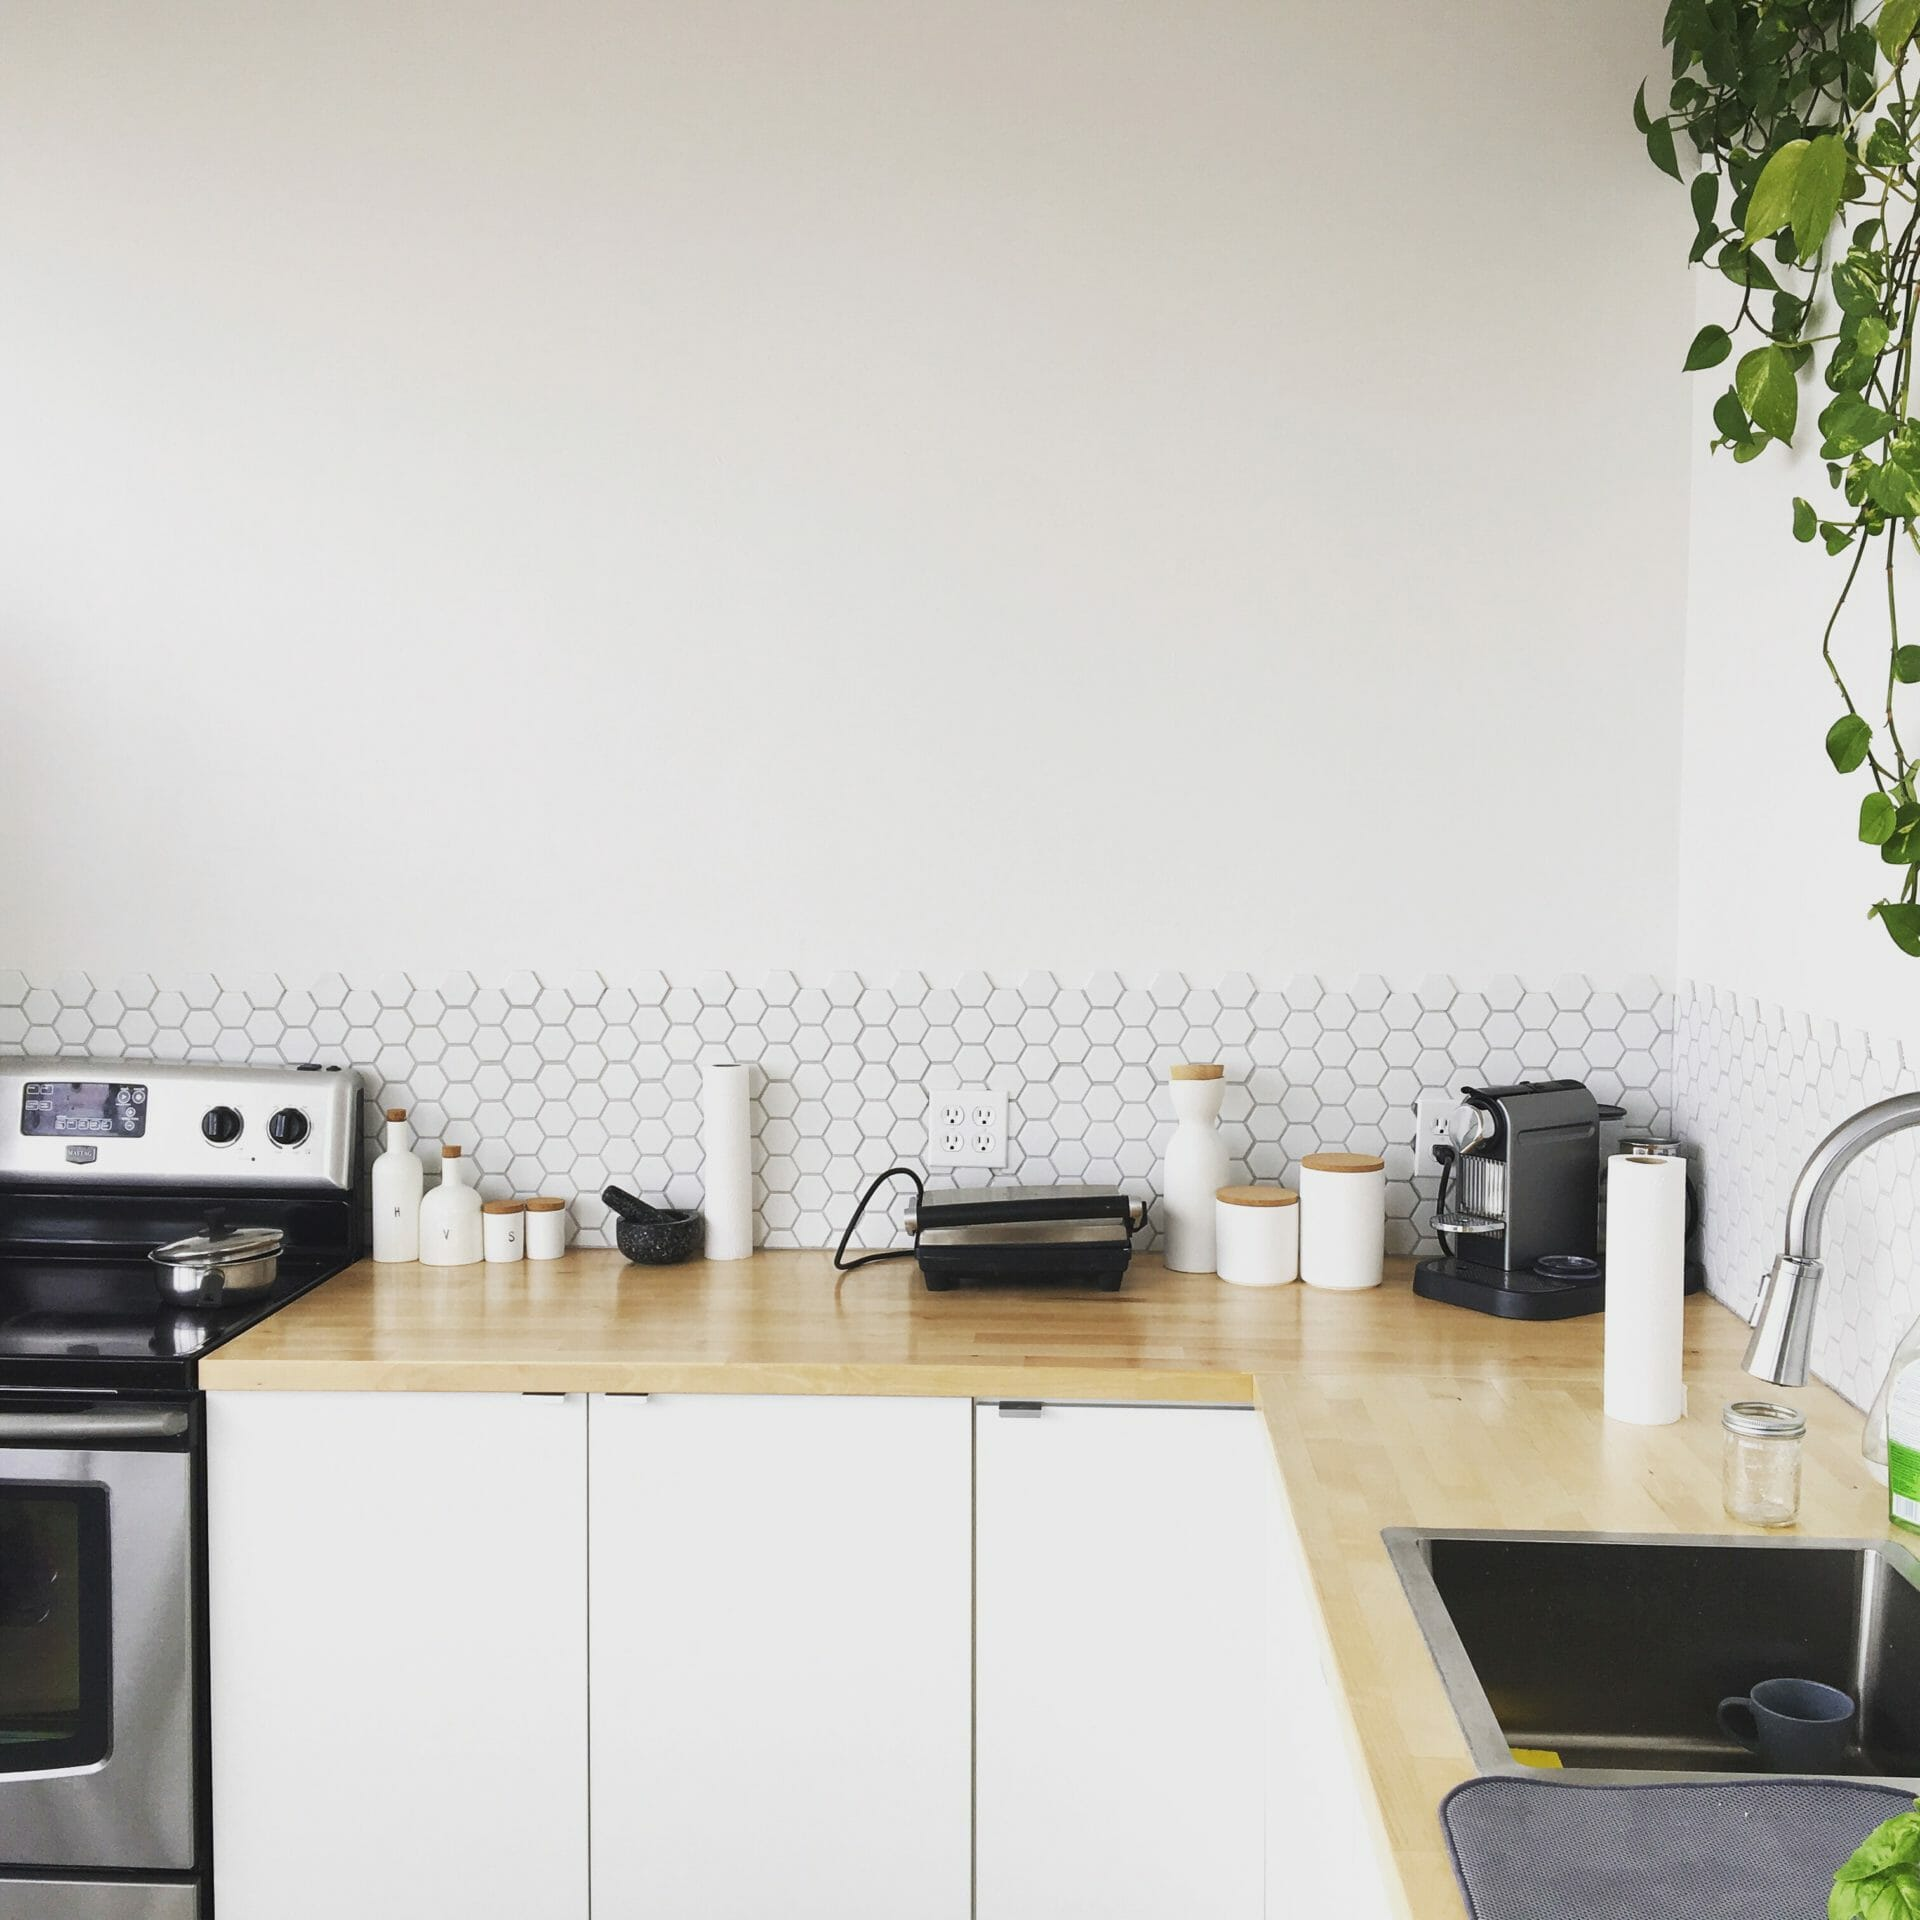 Picture of simple kitchen for Real Estate News for Investors Podcast Episode #533